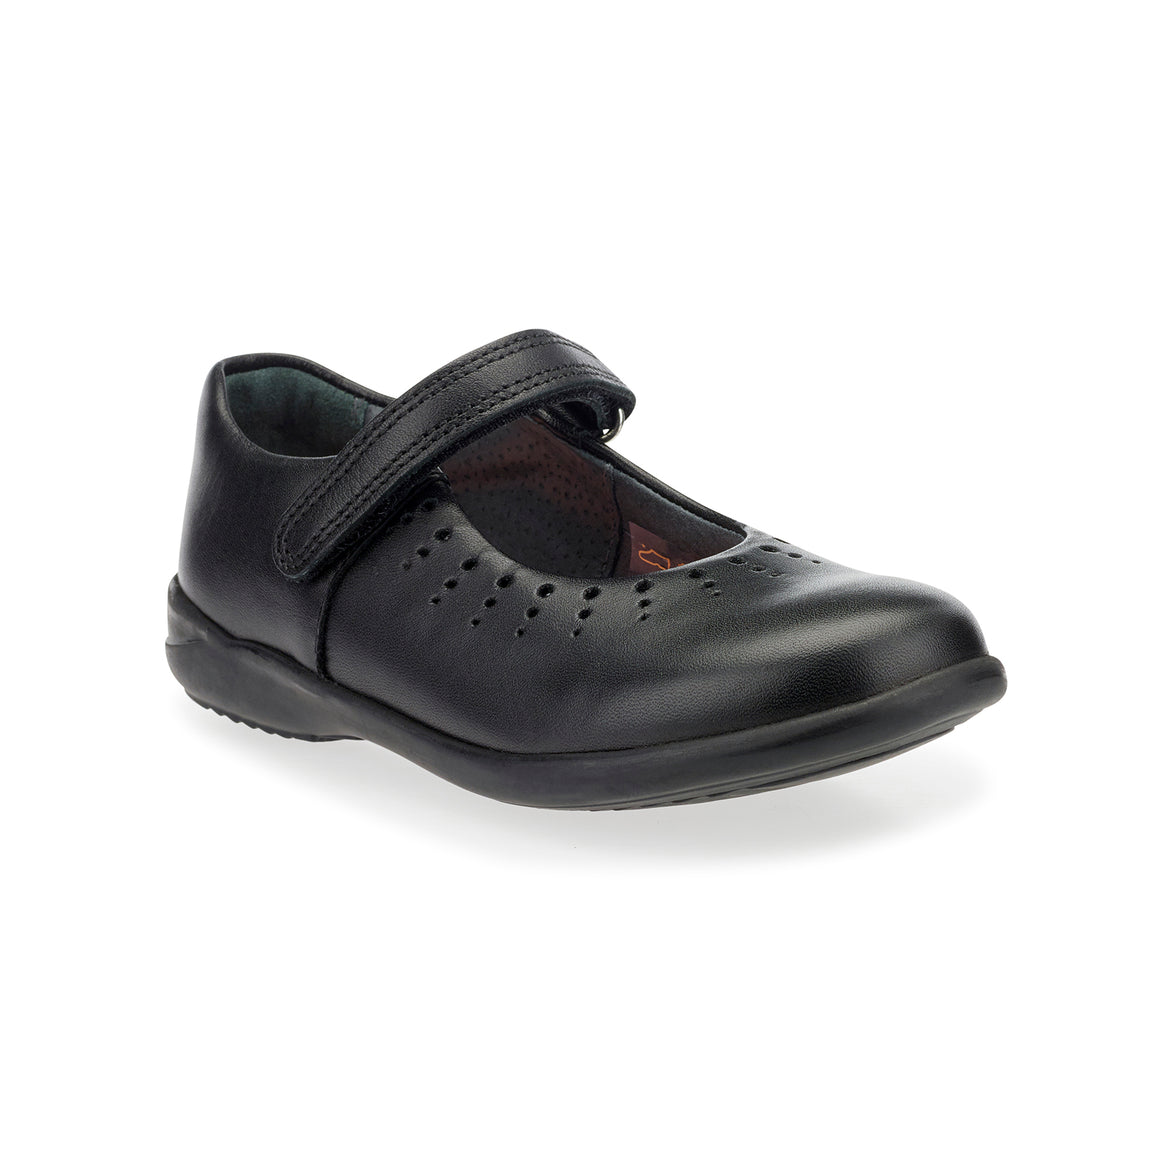 Mary Jane School Shoes for Girls in Black